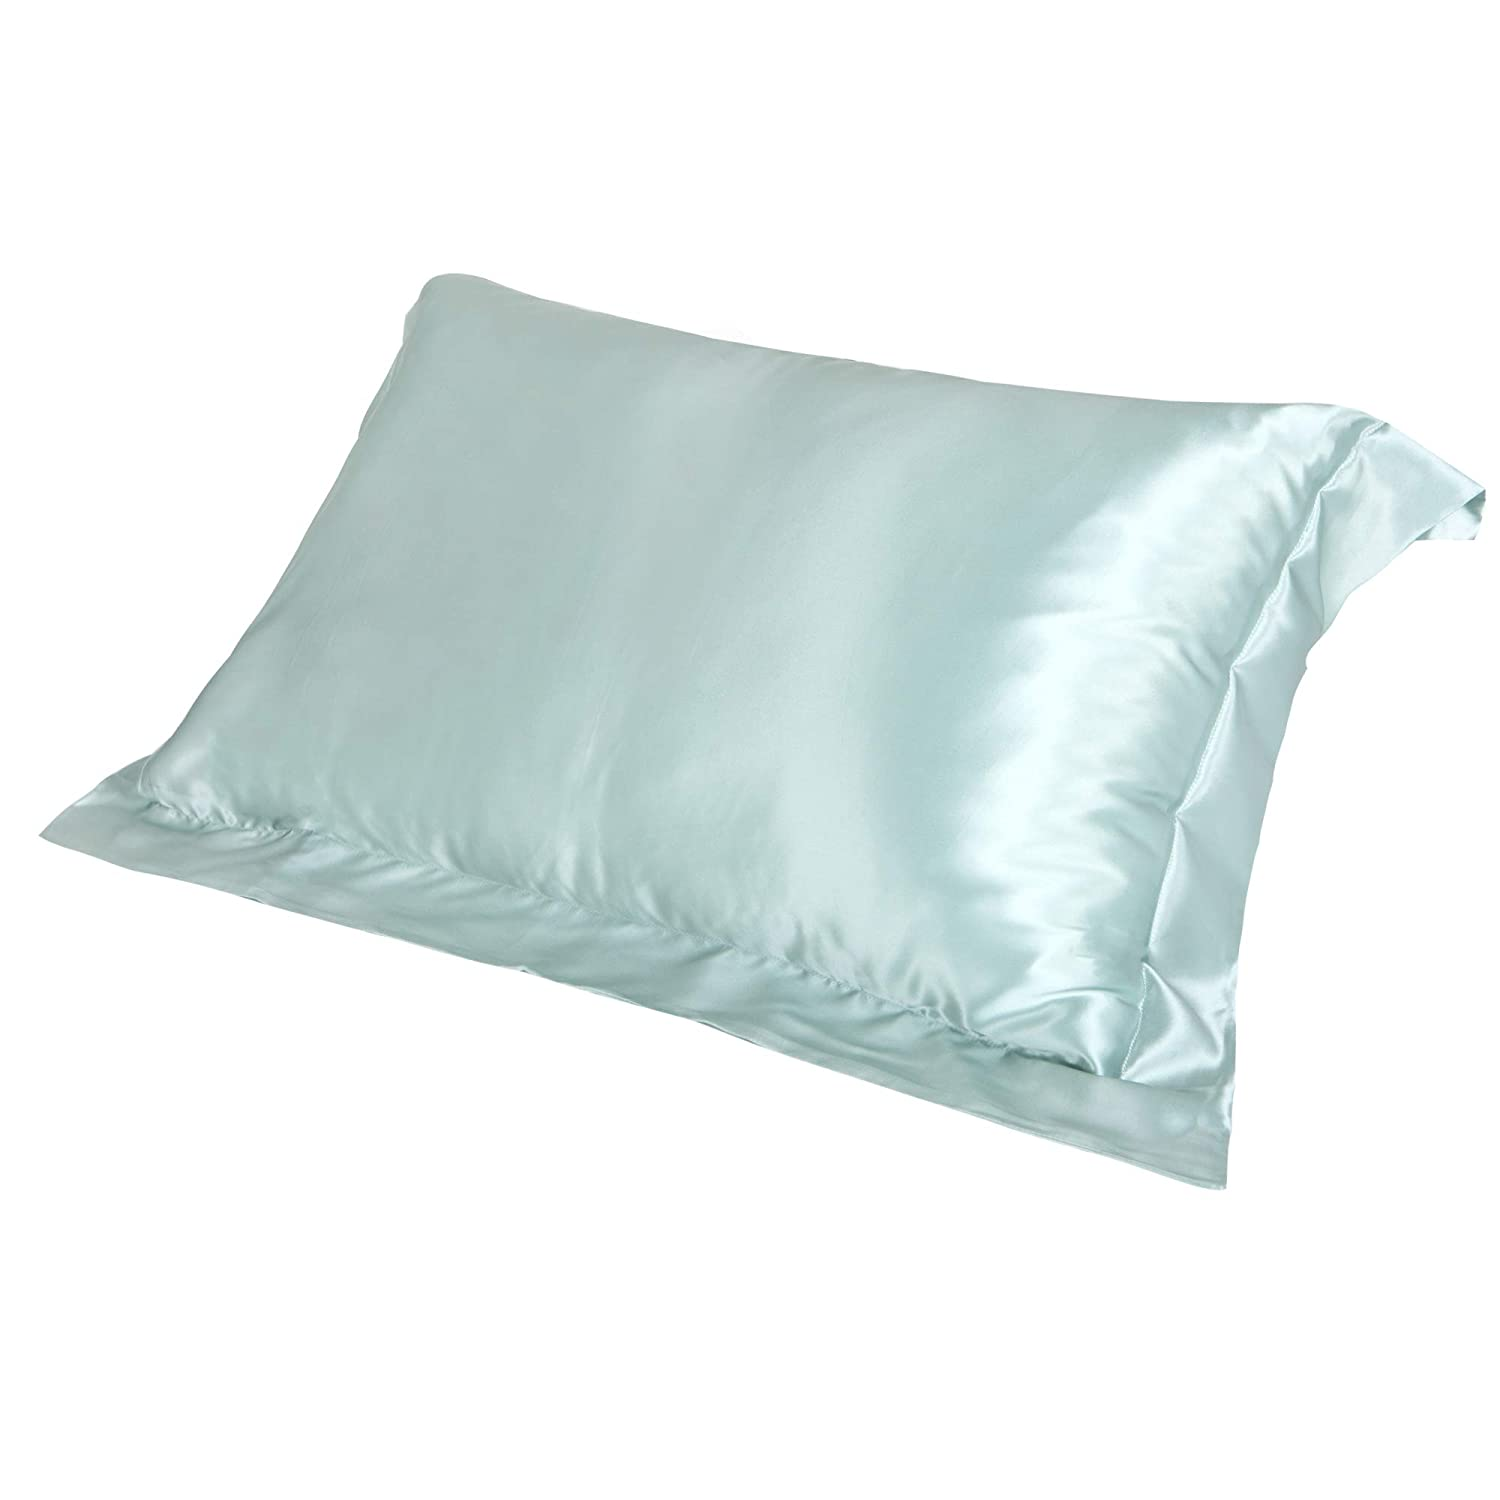 100% Charmeuse Silk Pillowcase Oxford Style (BLACK) 50 cm x 75 cm + 7cm Border - RRP £45 JASMINE SILK